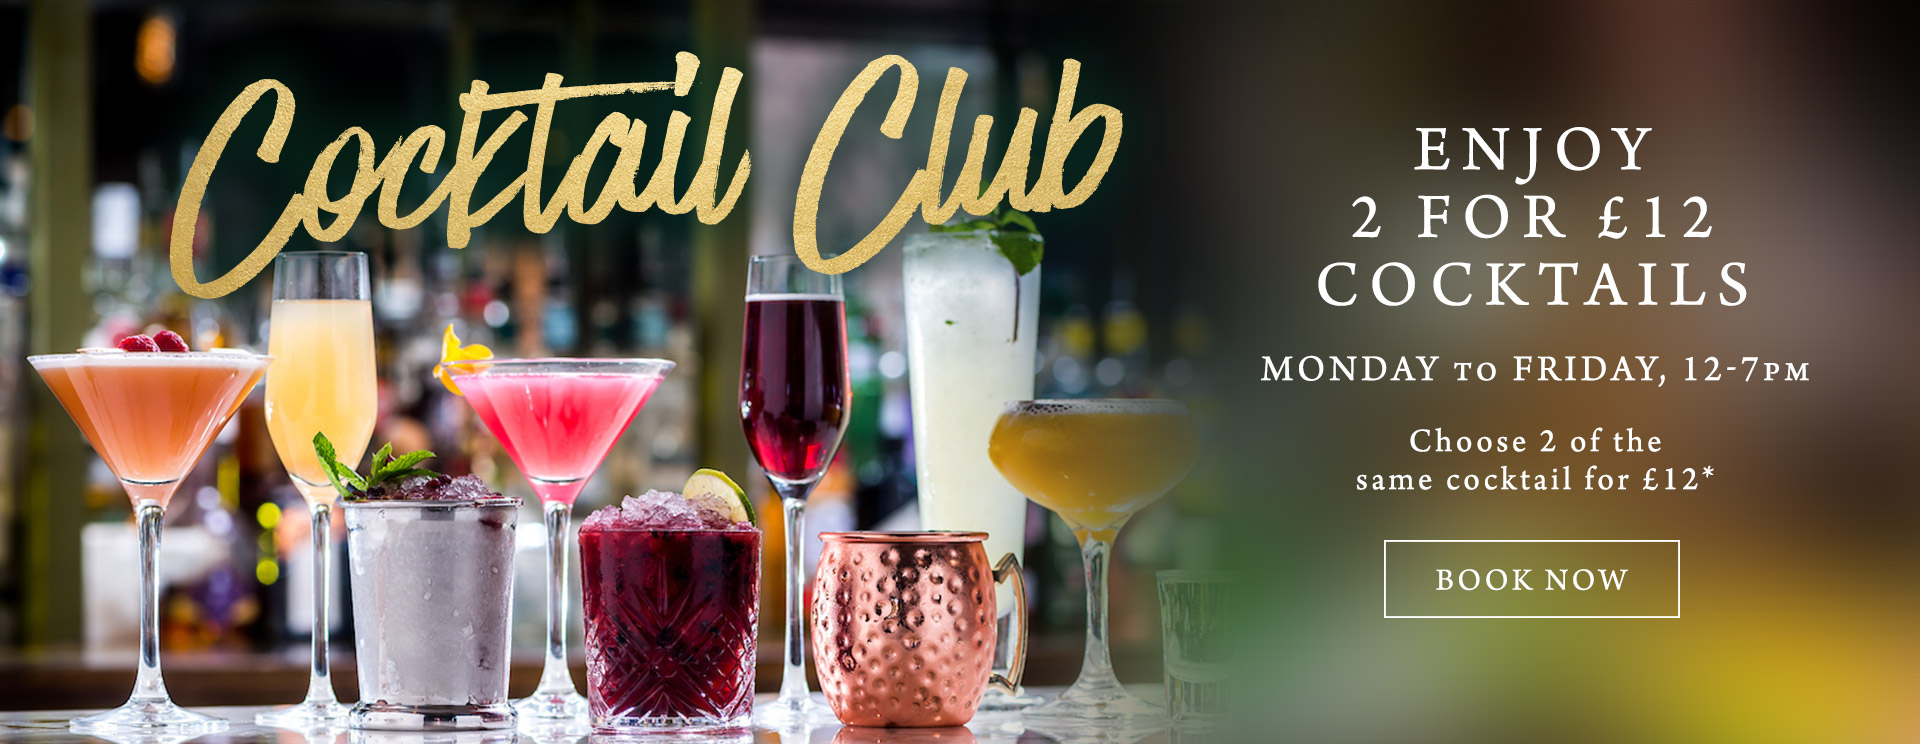 2 for £12 cocktails at The Nag's Head